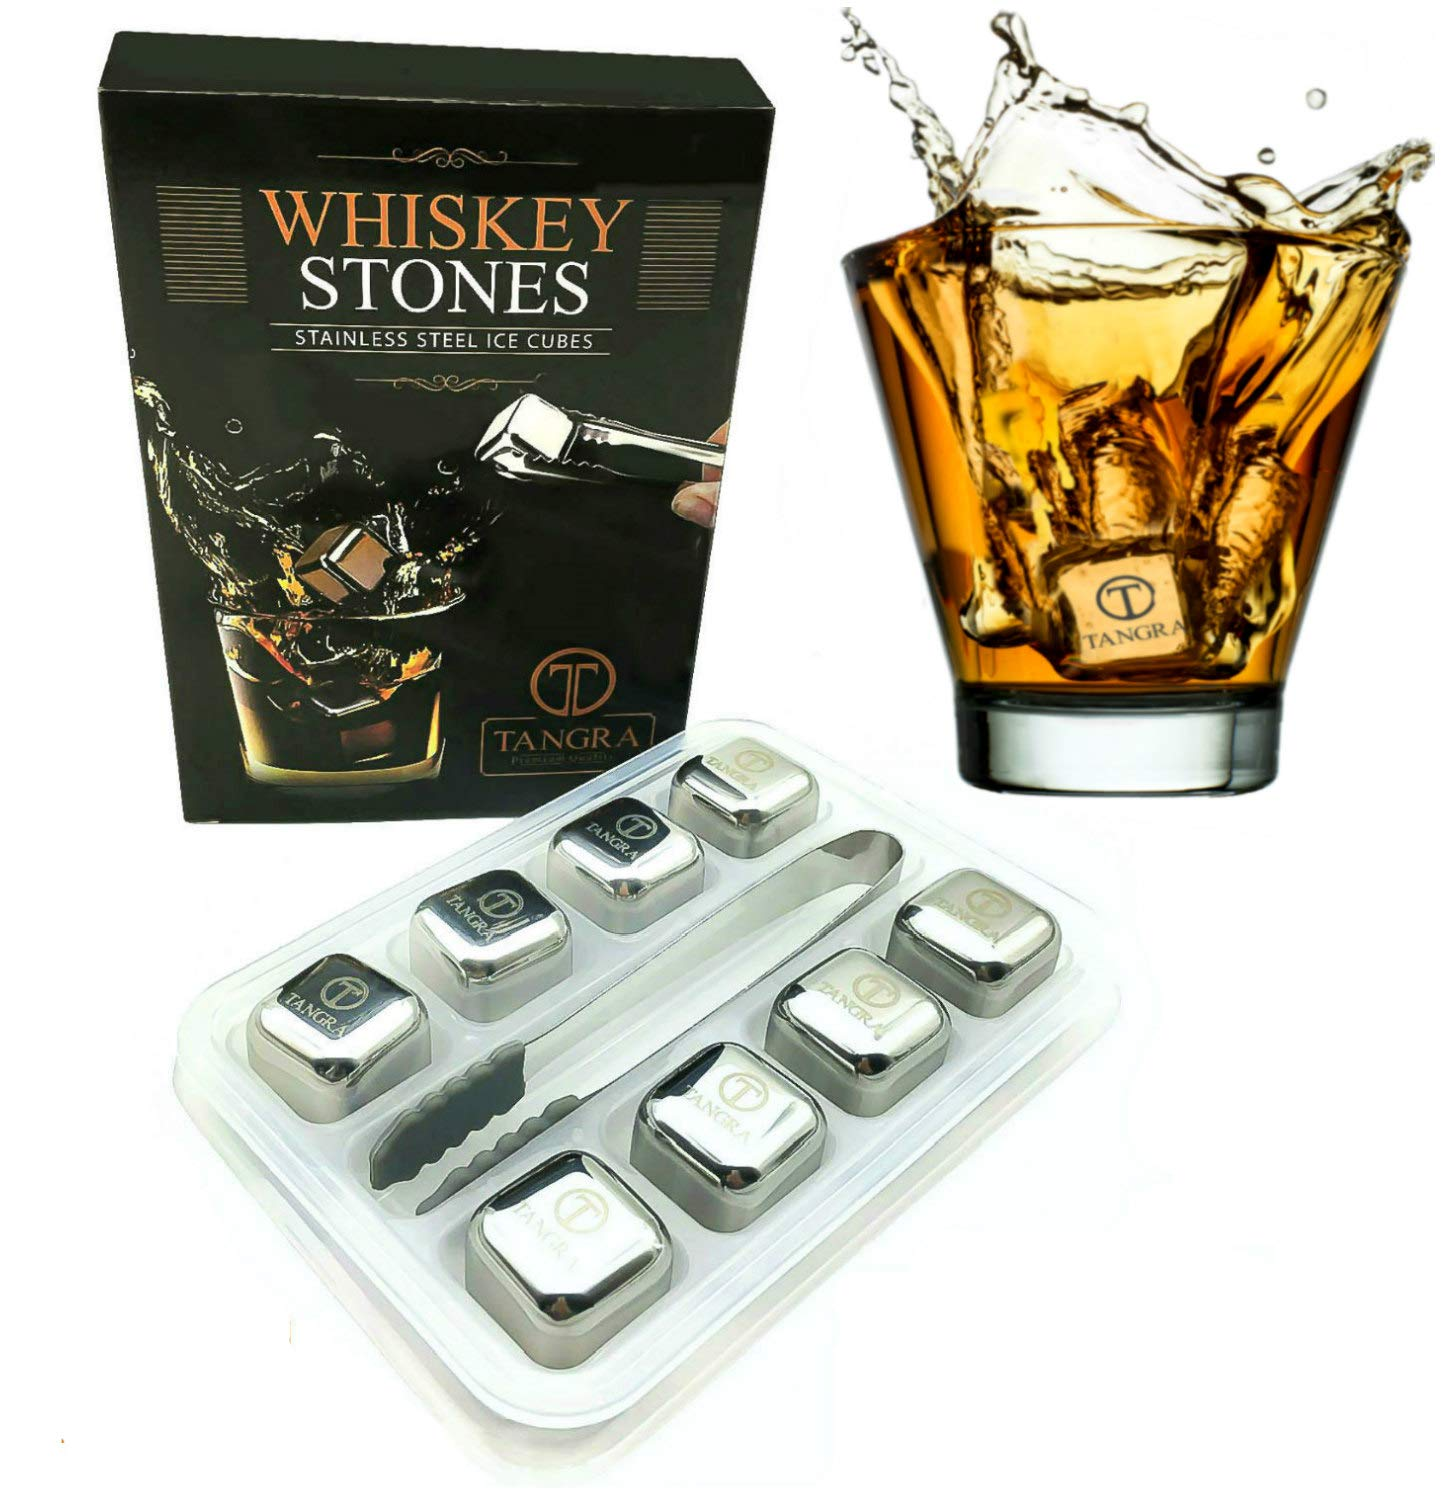 Whiskey Stones Gift Set of 8 Stainless Steel Reusable Ice Cubes with Tray and Tongs. Bar Accessory for Whiskey or Wine Lovers. no Dilution, Taste or Odor with Chilling Cubes and Rocks by TANGRA.